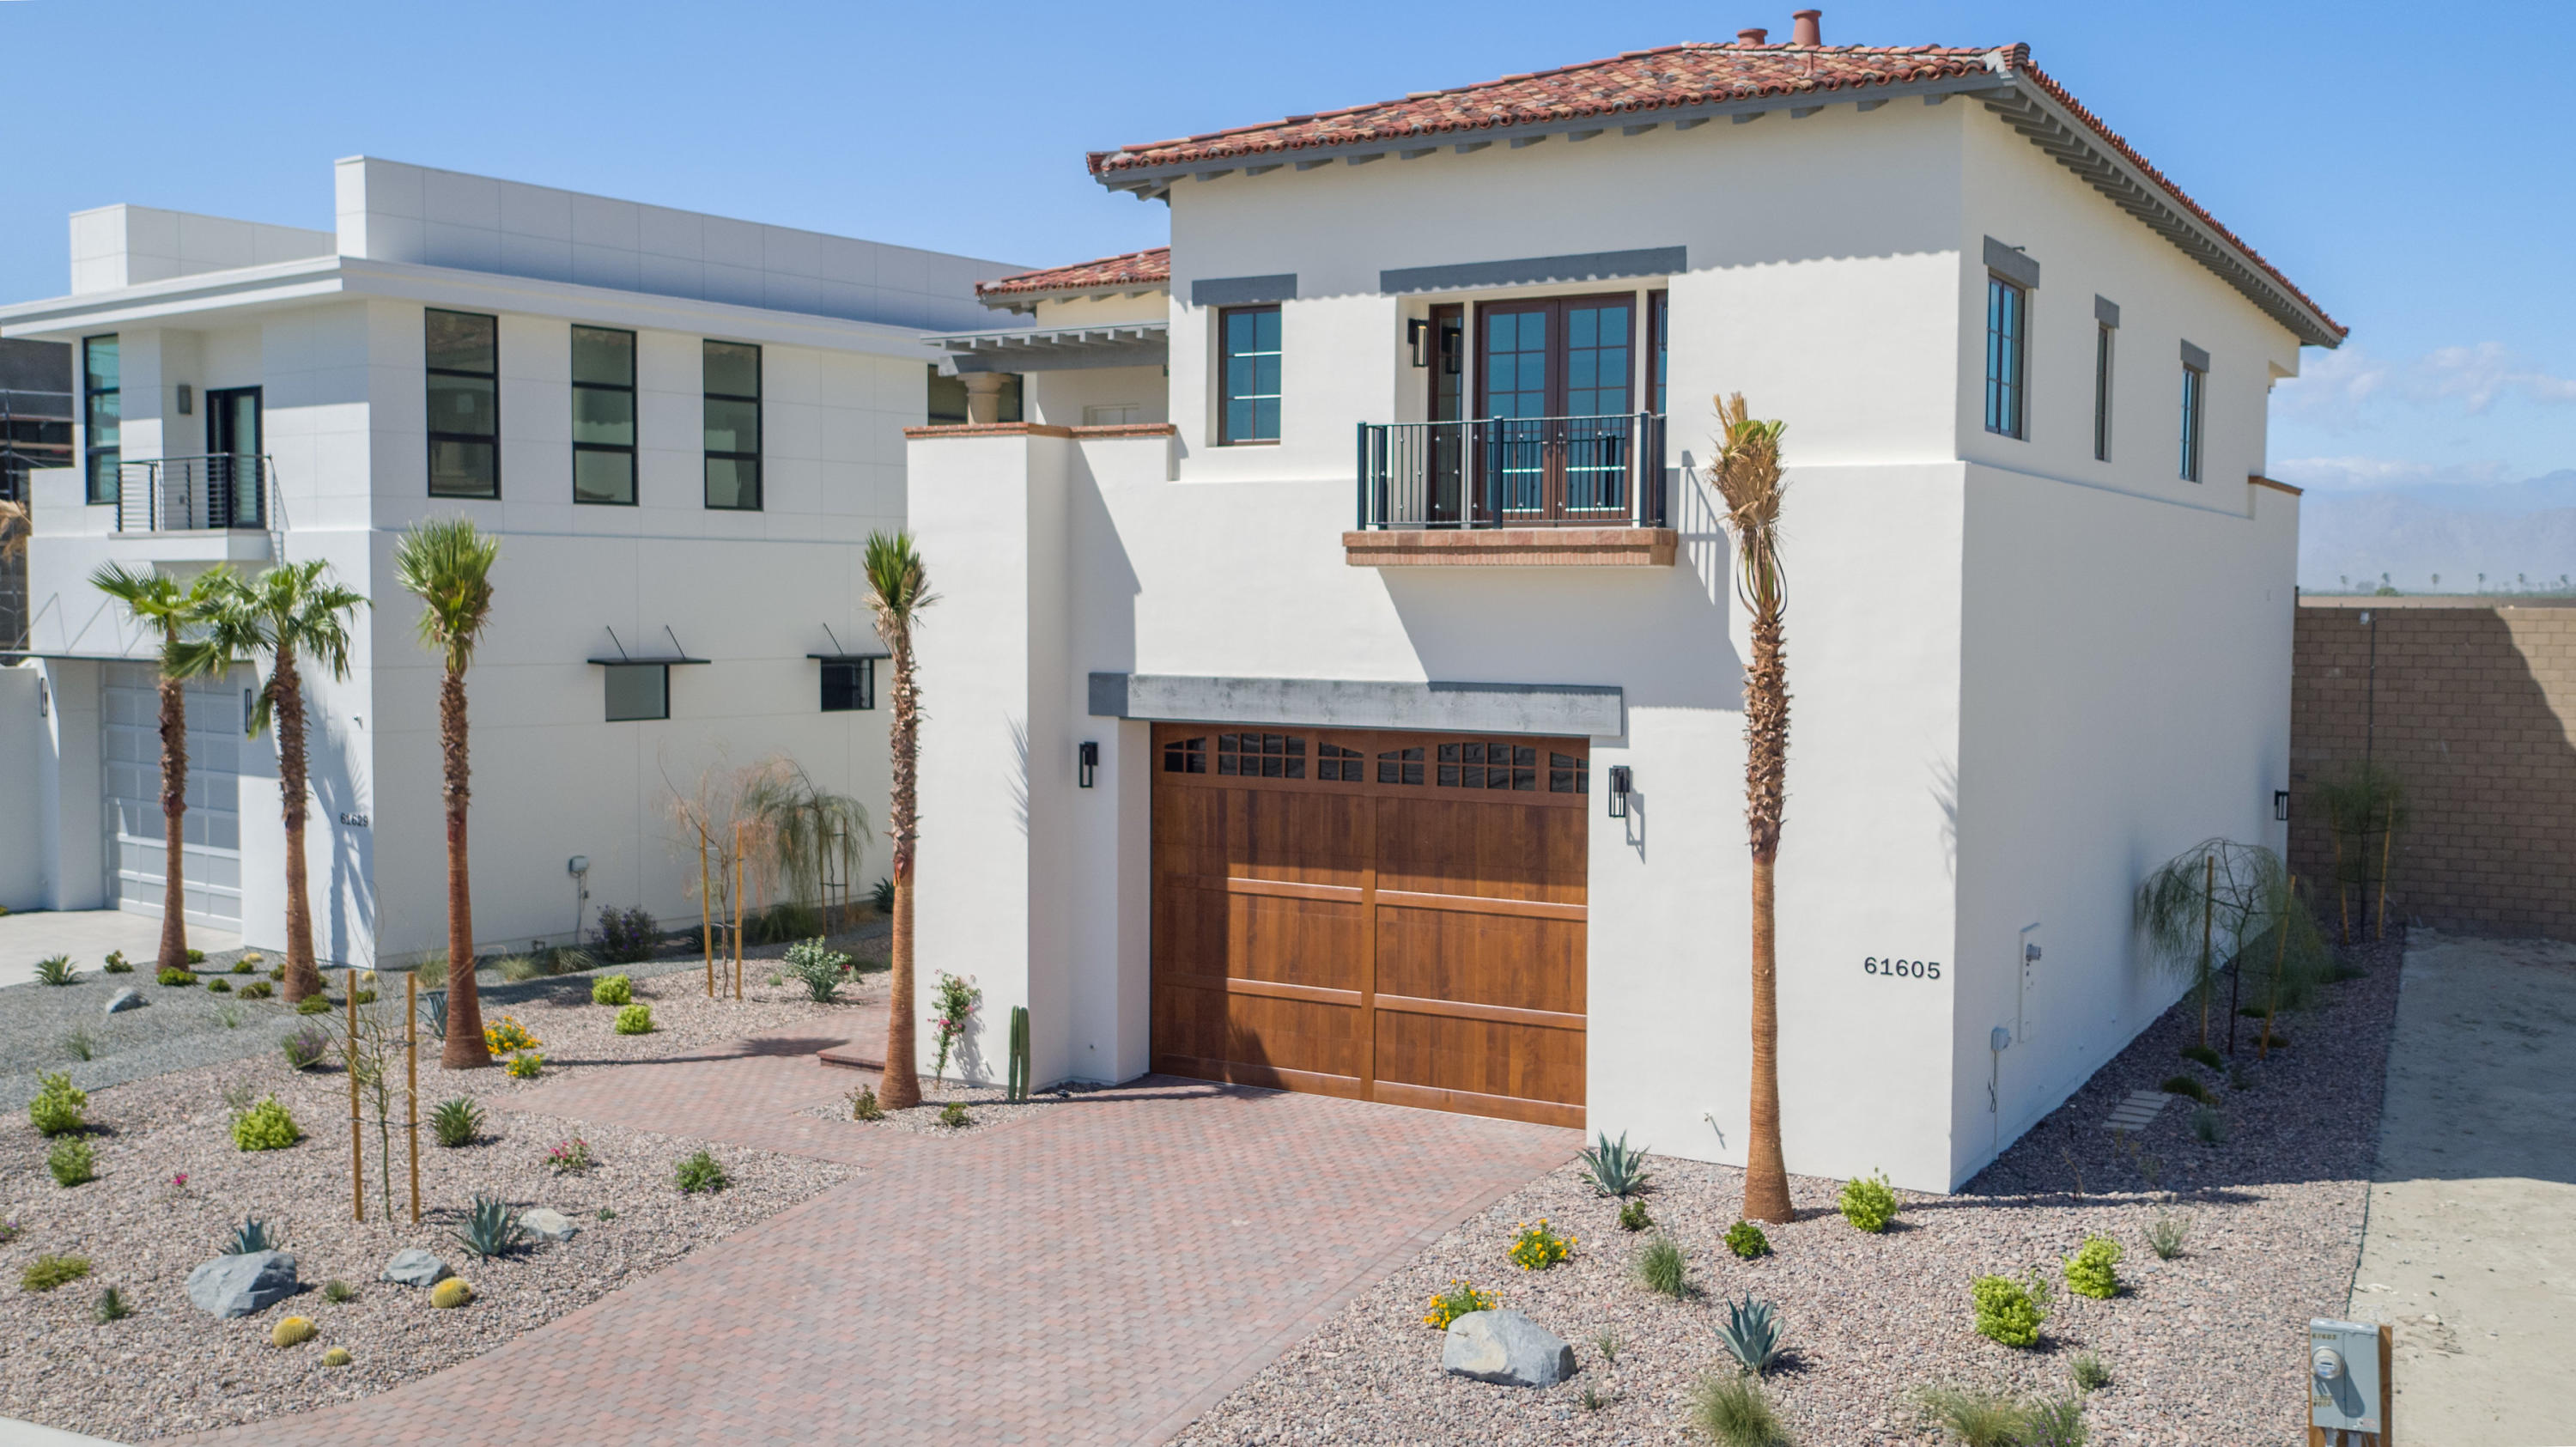 Photo of 61605 Goodwood Drive, Thermal, CA 92274